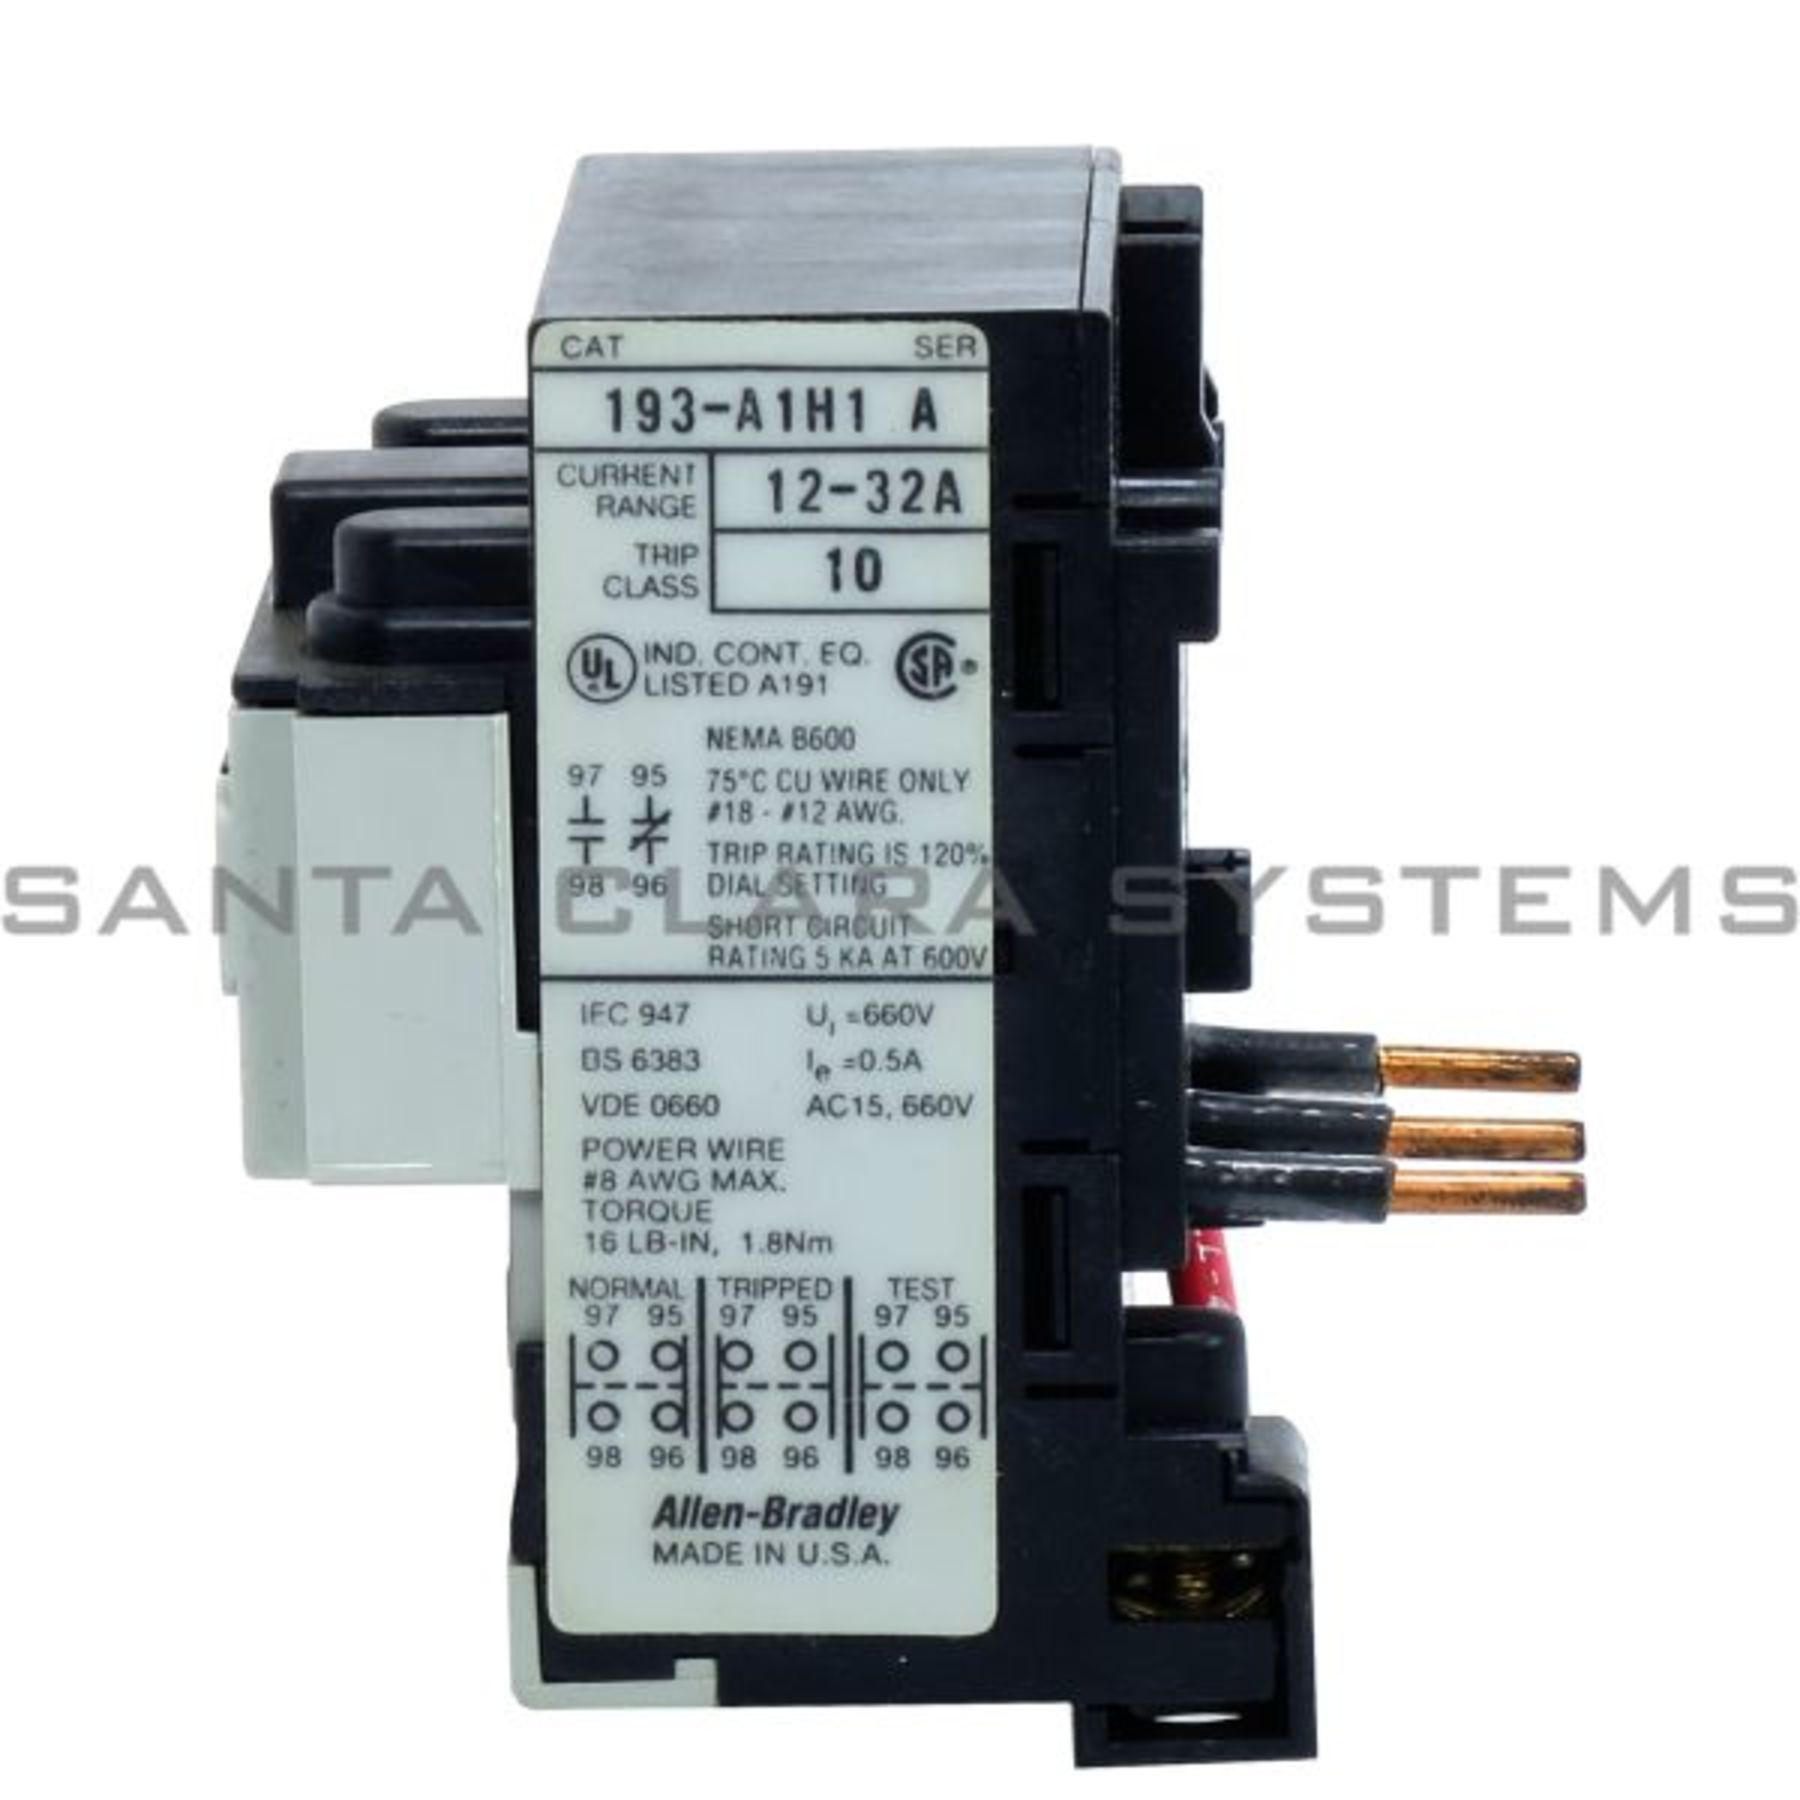 193-A1H1 Overload Relay In stock and ready to ship - Santa Clara Systems